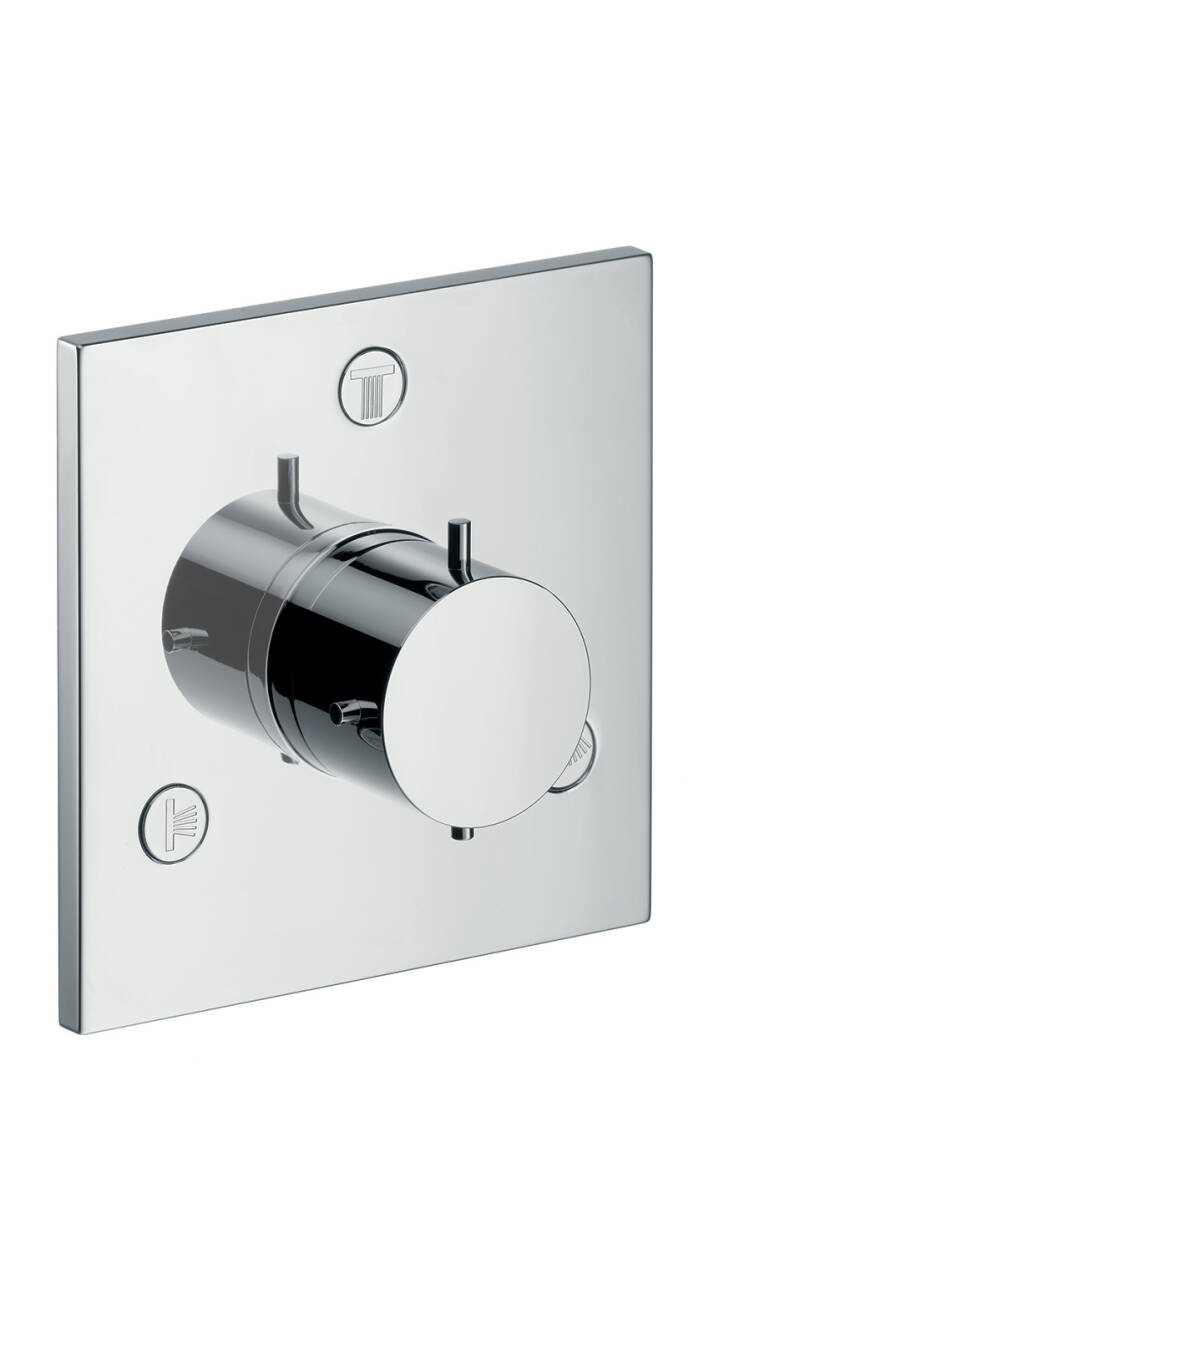 Shut-off/ diverter valve Trio/ Quattro for concealed installation, Chrome, 10934000